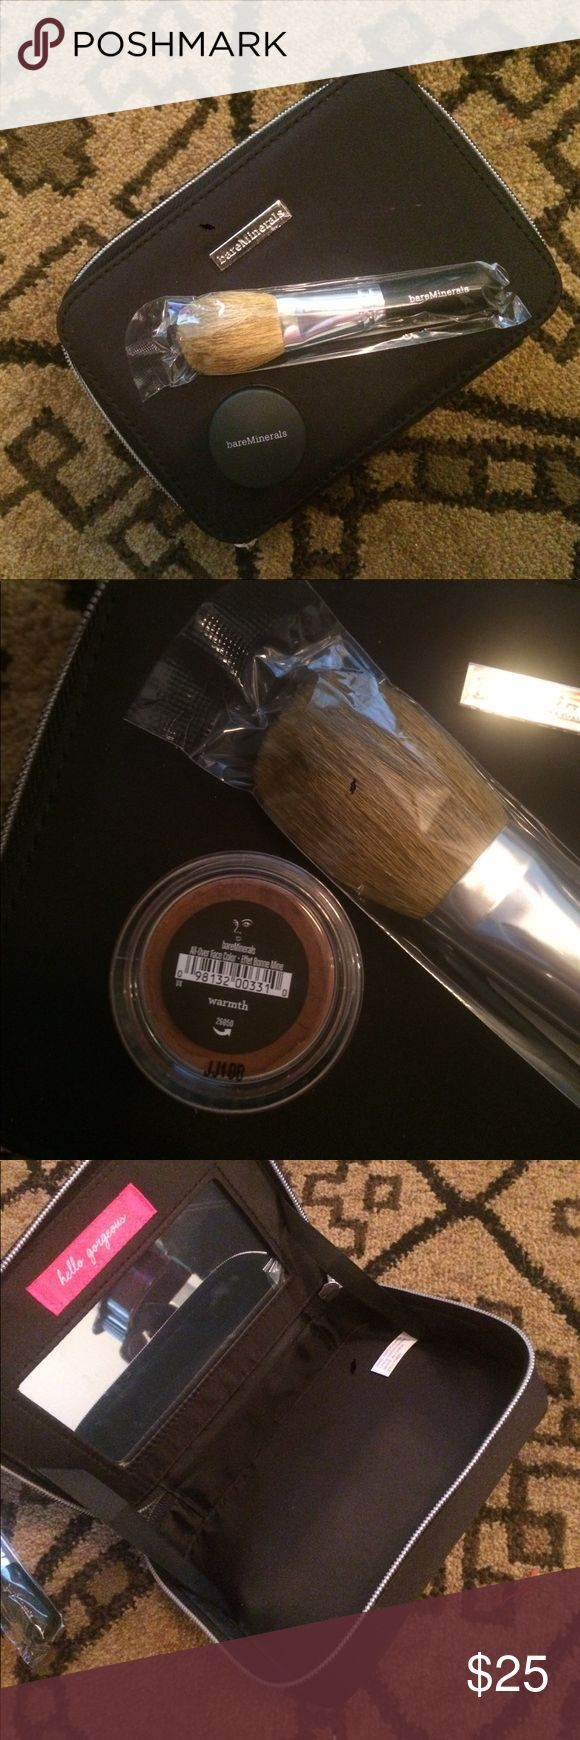 Bare Minerals brush and warmth set New in packaging flawless face brush, warmth and zippered cosmetic bag. Mirror in the bag, hard sides. Makeup